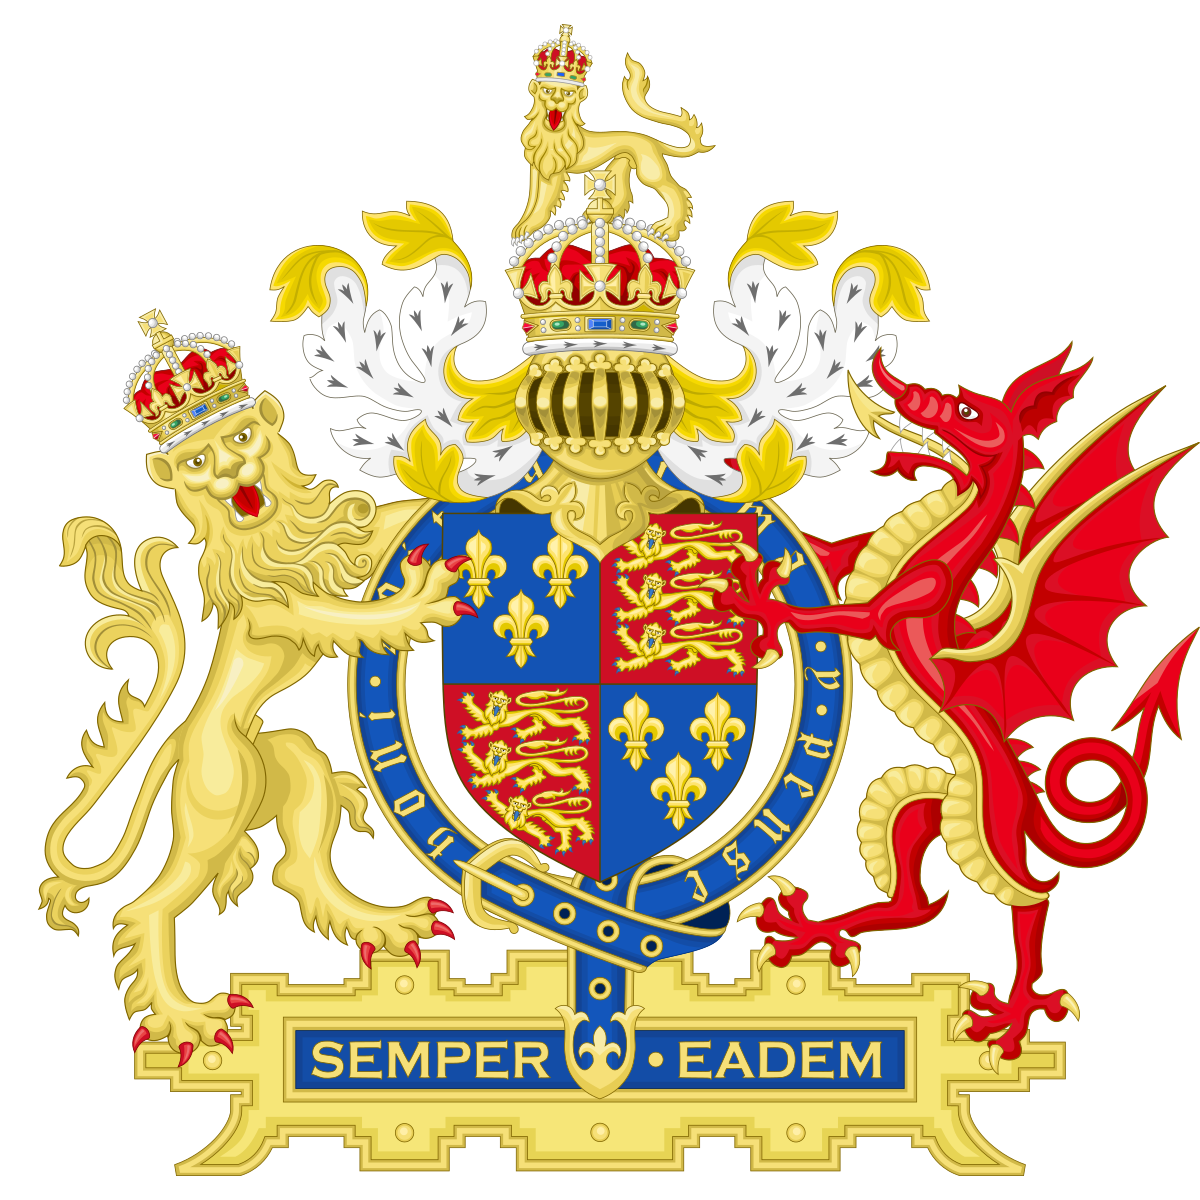 Parliament of england wikipedia. Knights clipart history british